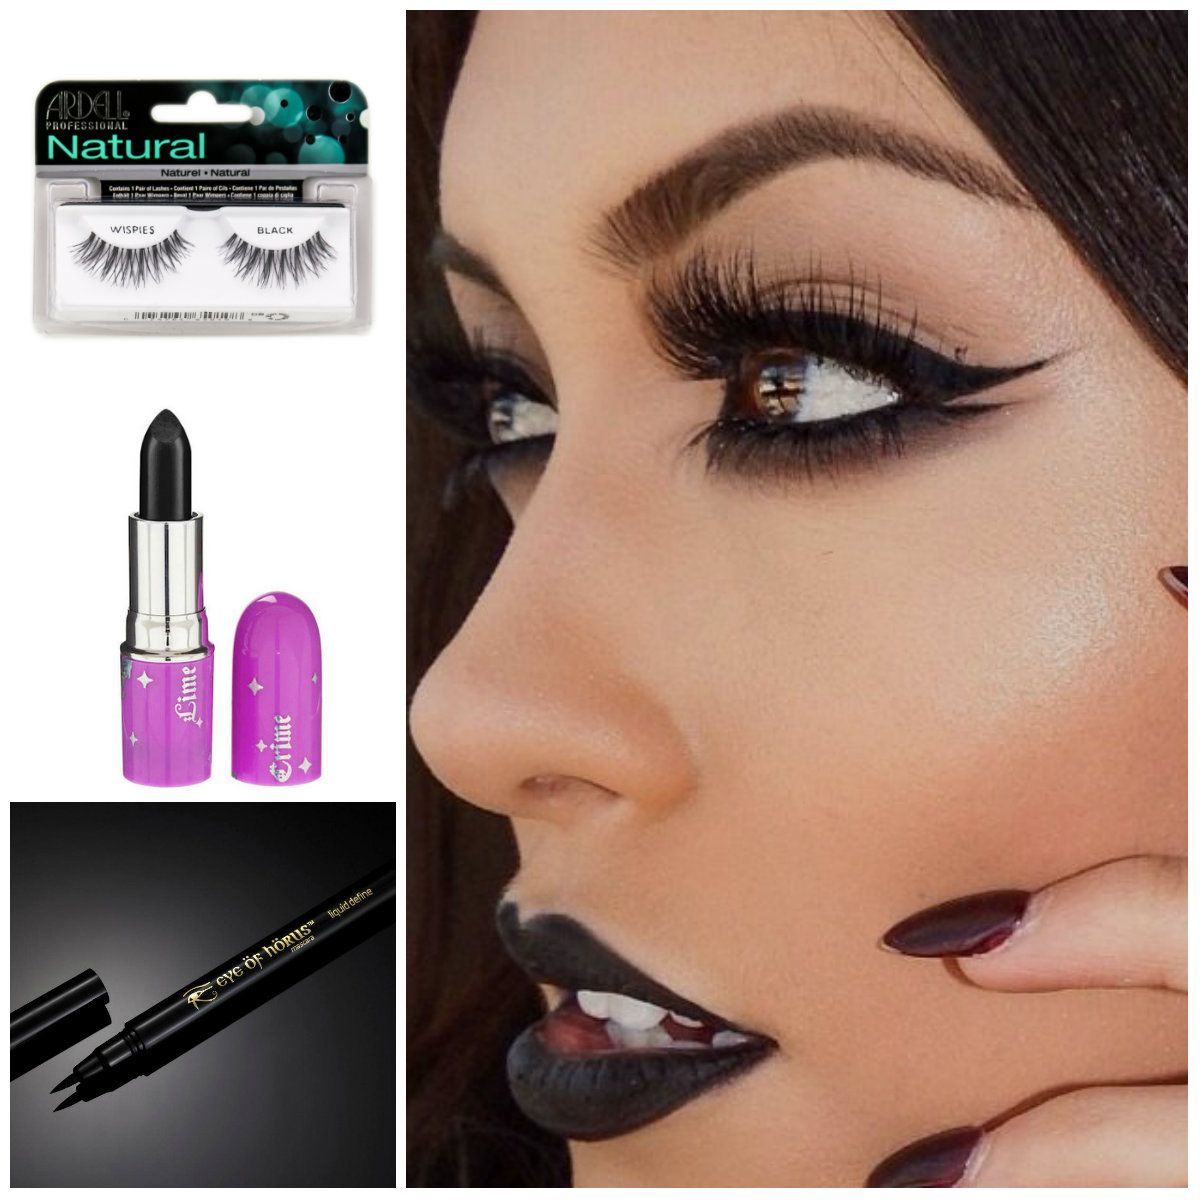 Pin by 0 on Make up obsessed Wispy lashes, Ardell